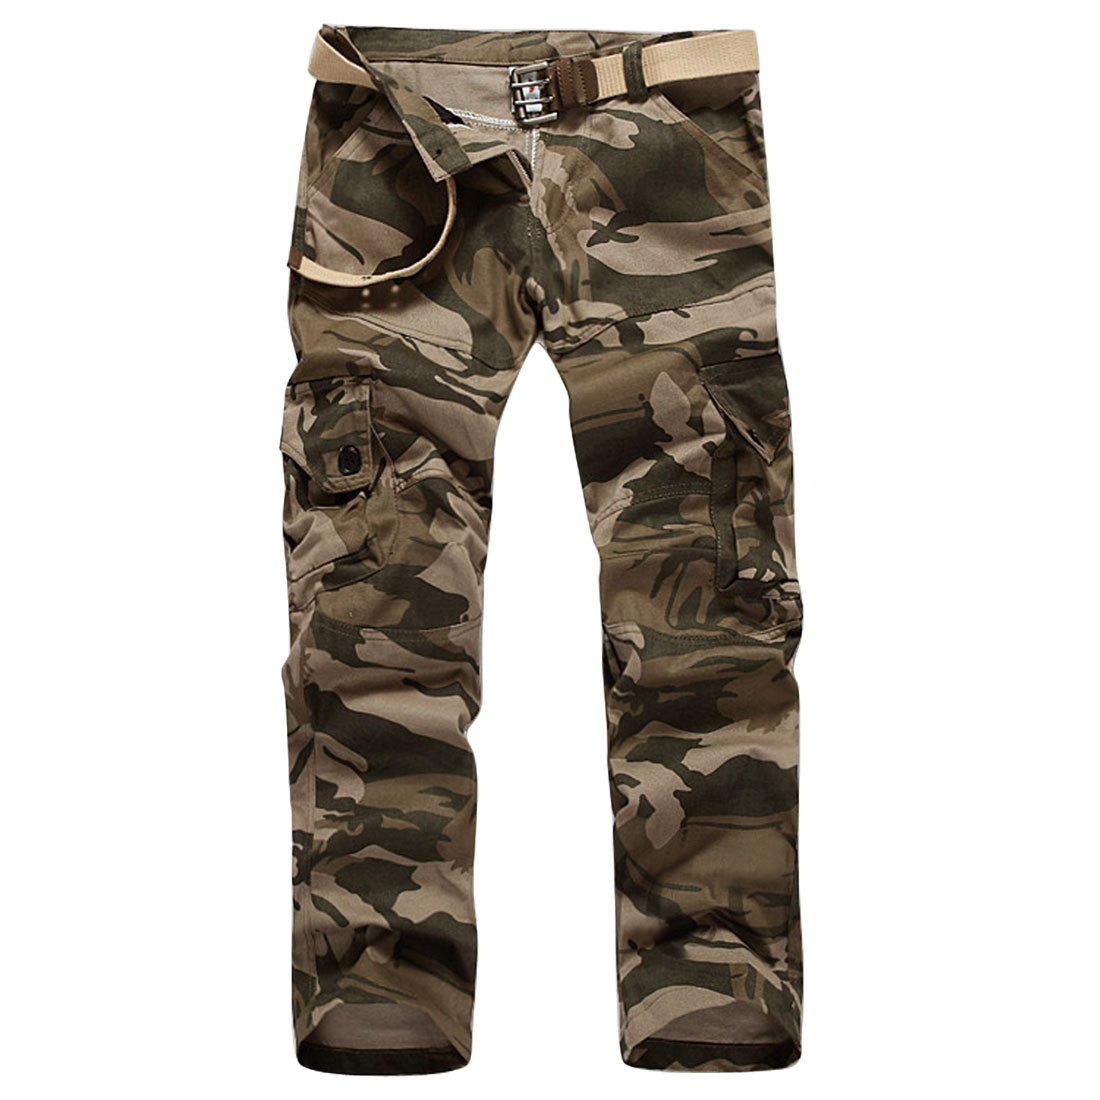 Natural Waist Double Flap Pockets Back Cargo Pants foren Army